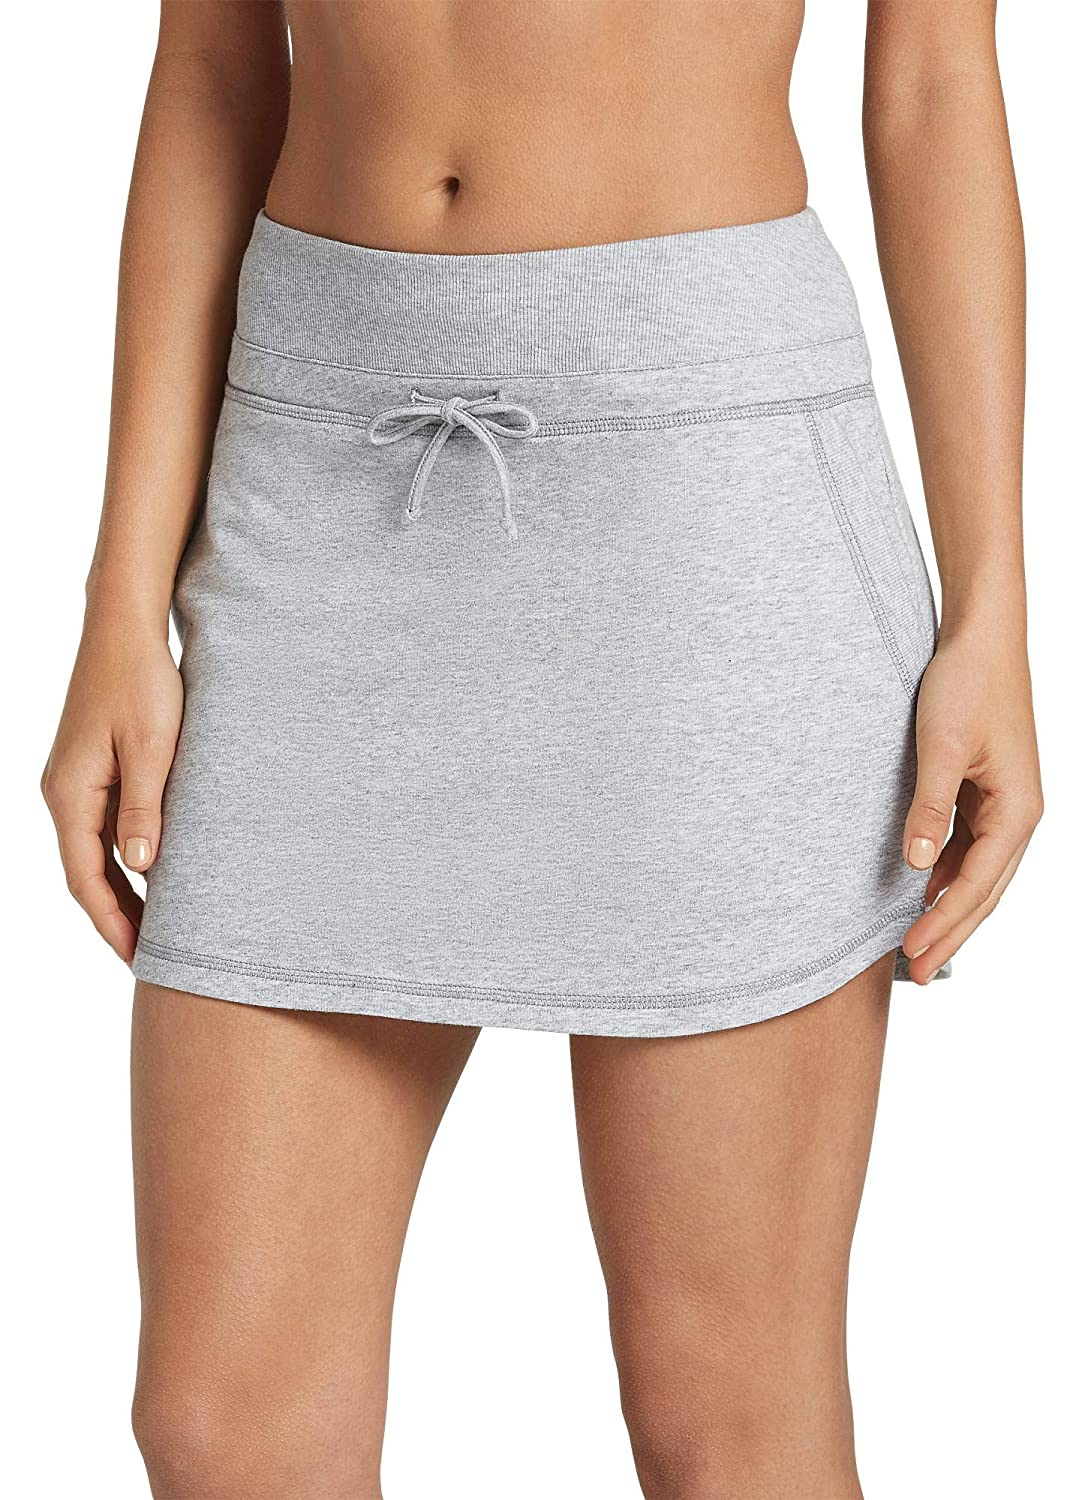 989fda29b1 Jockey Women's Activewear Drawstring Skirt, Light Grey Heather, XL at  Amazon Women's Clothing store: